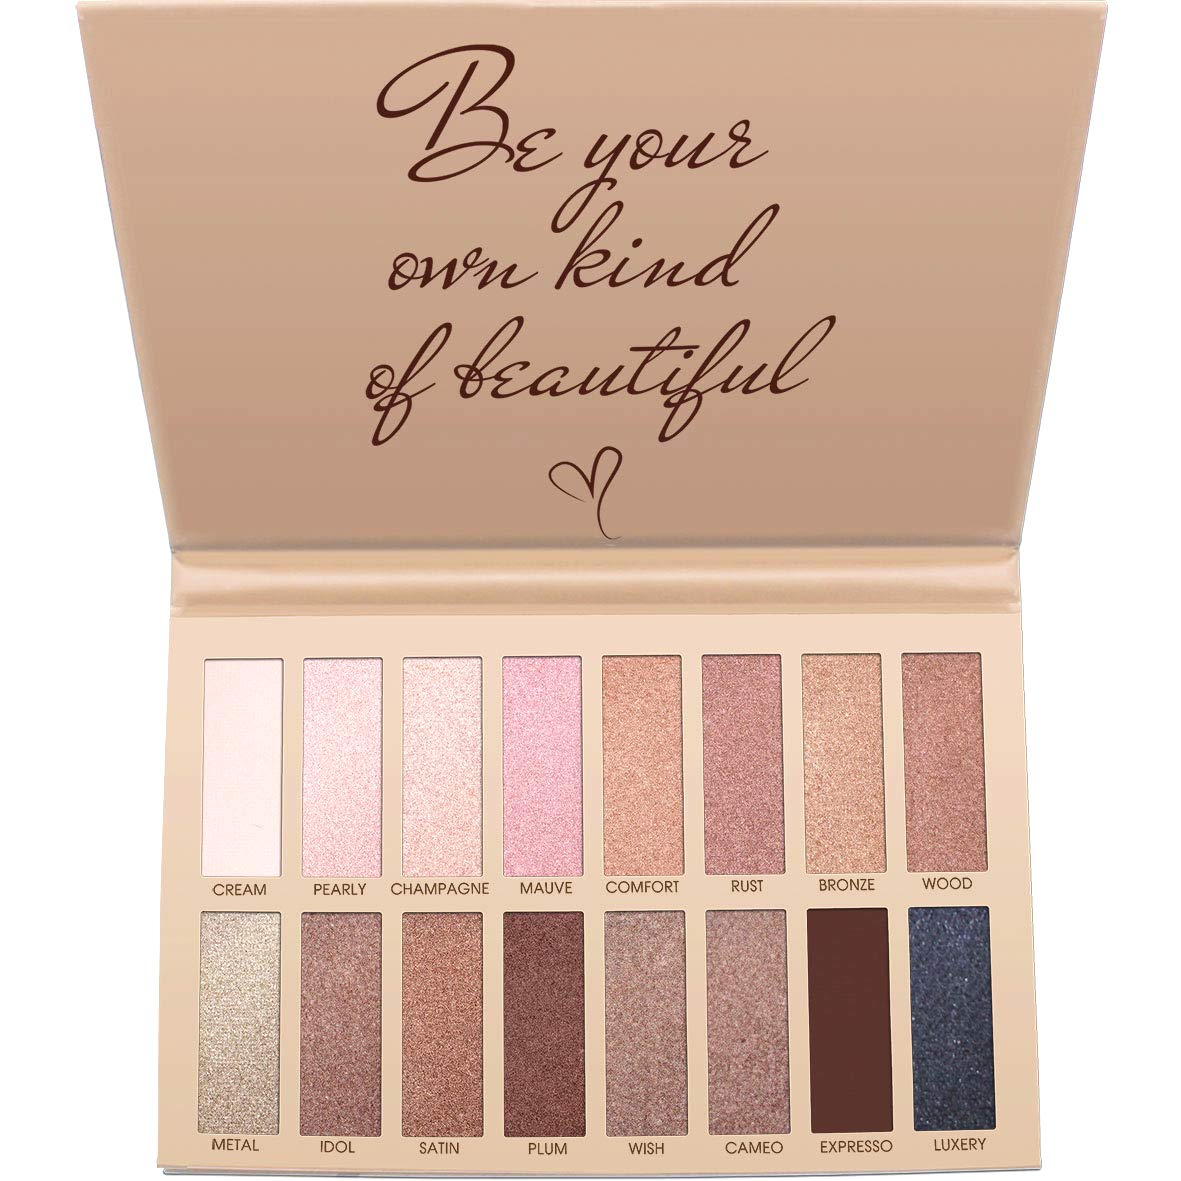 Lamora Best Pro Eyeshadow Palette Makeup - Matte Shimmer 16 Colors - Highly Pigmented - Professional Nudes Warm Natural Bronze Neutral Smoky Cosmetic Eye Shadows